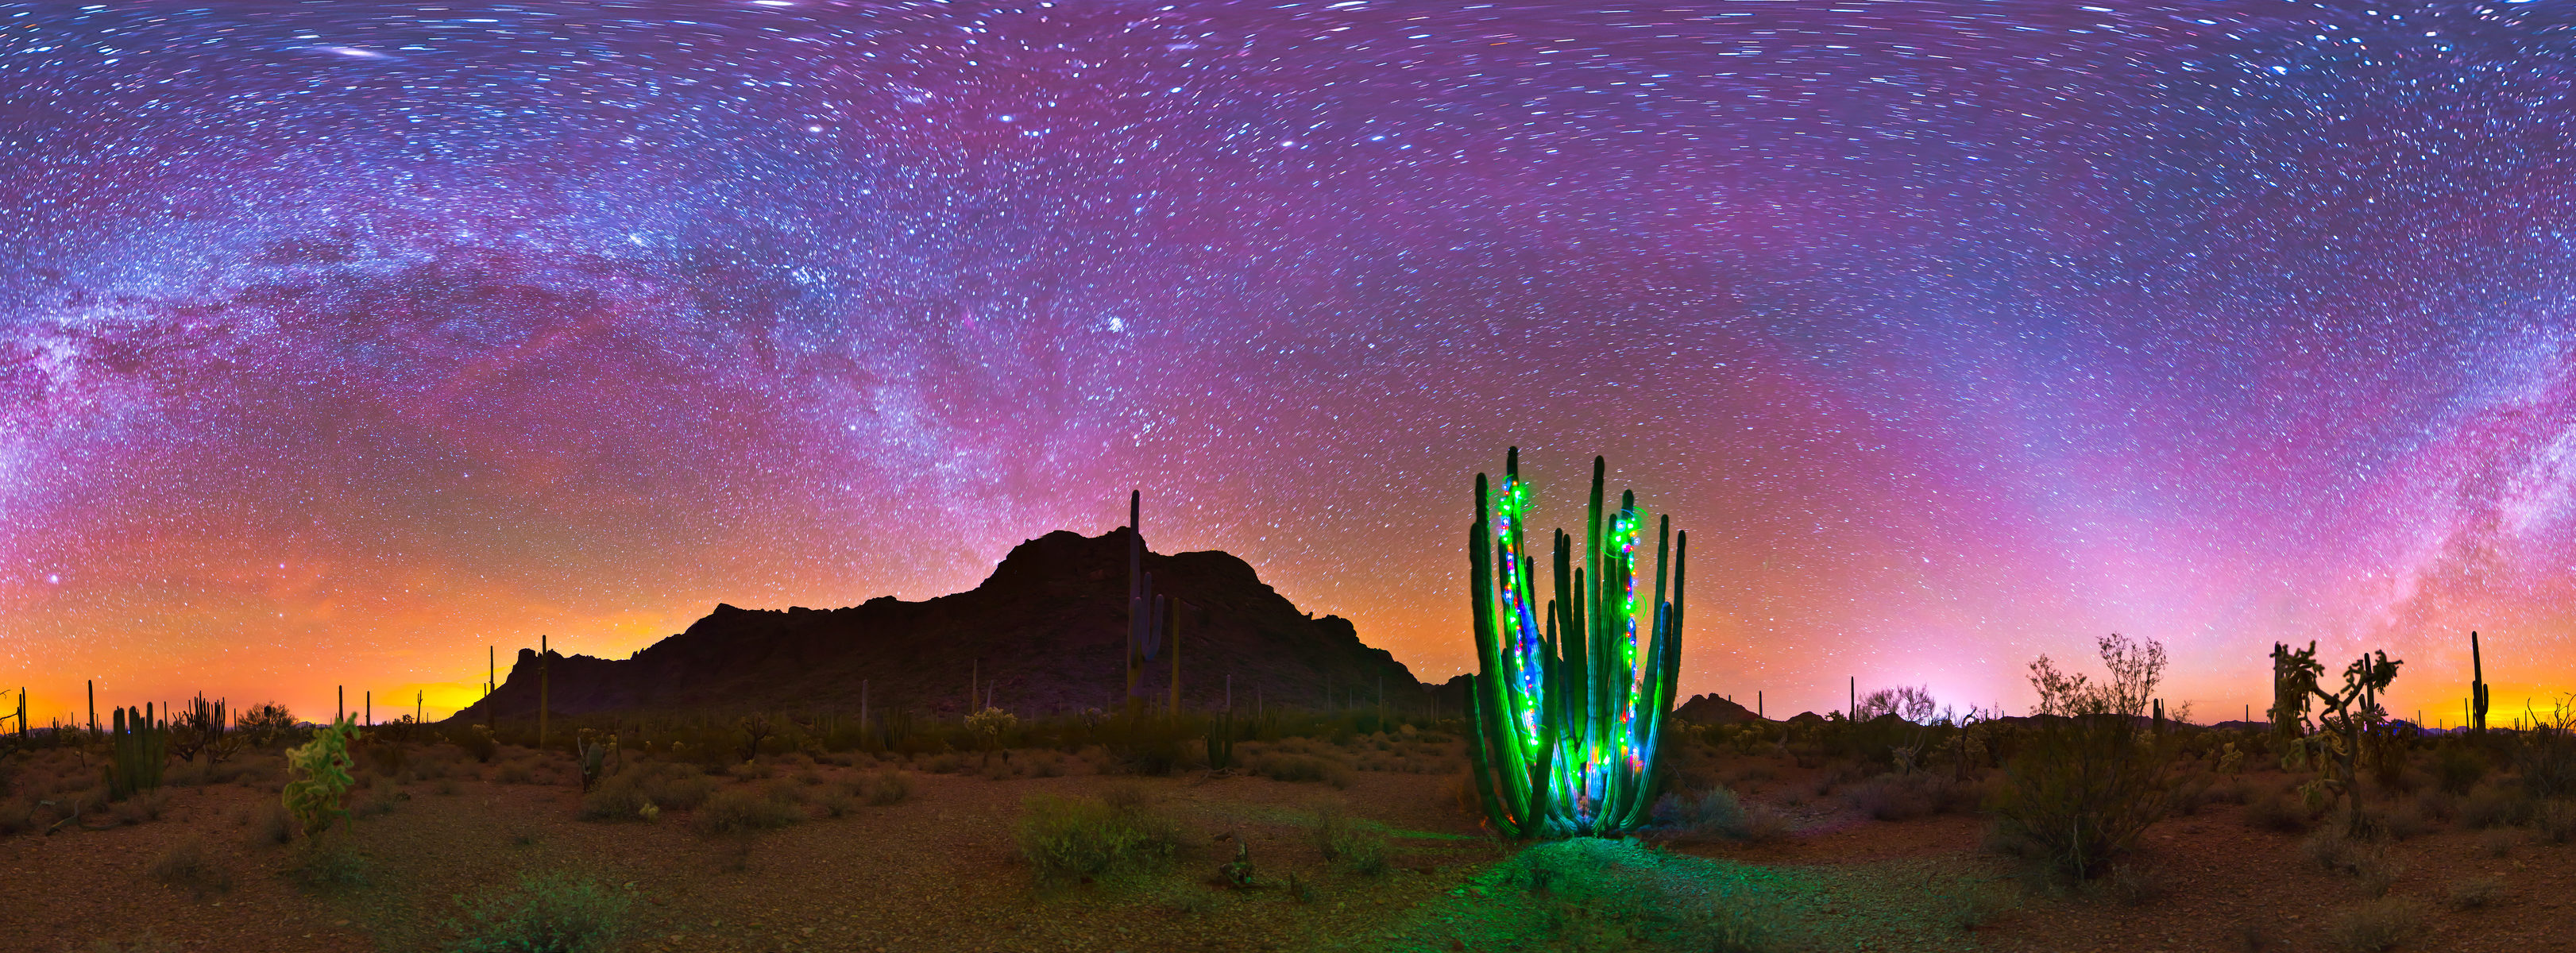 arizona christmas at organ pipe cactus nm alamo wash 360